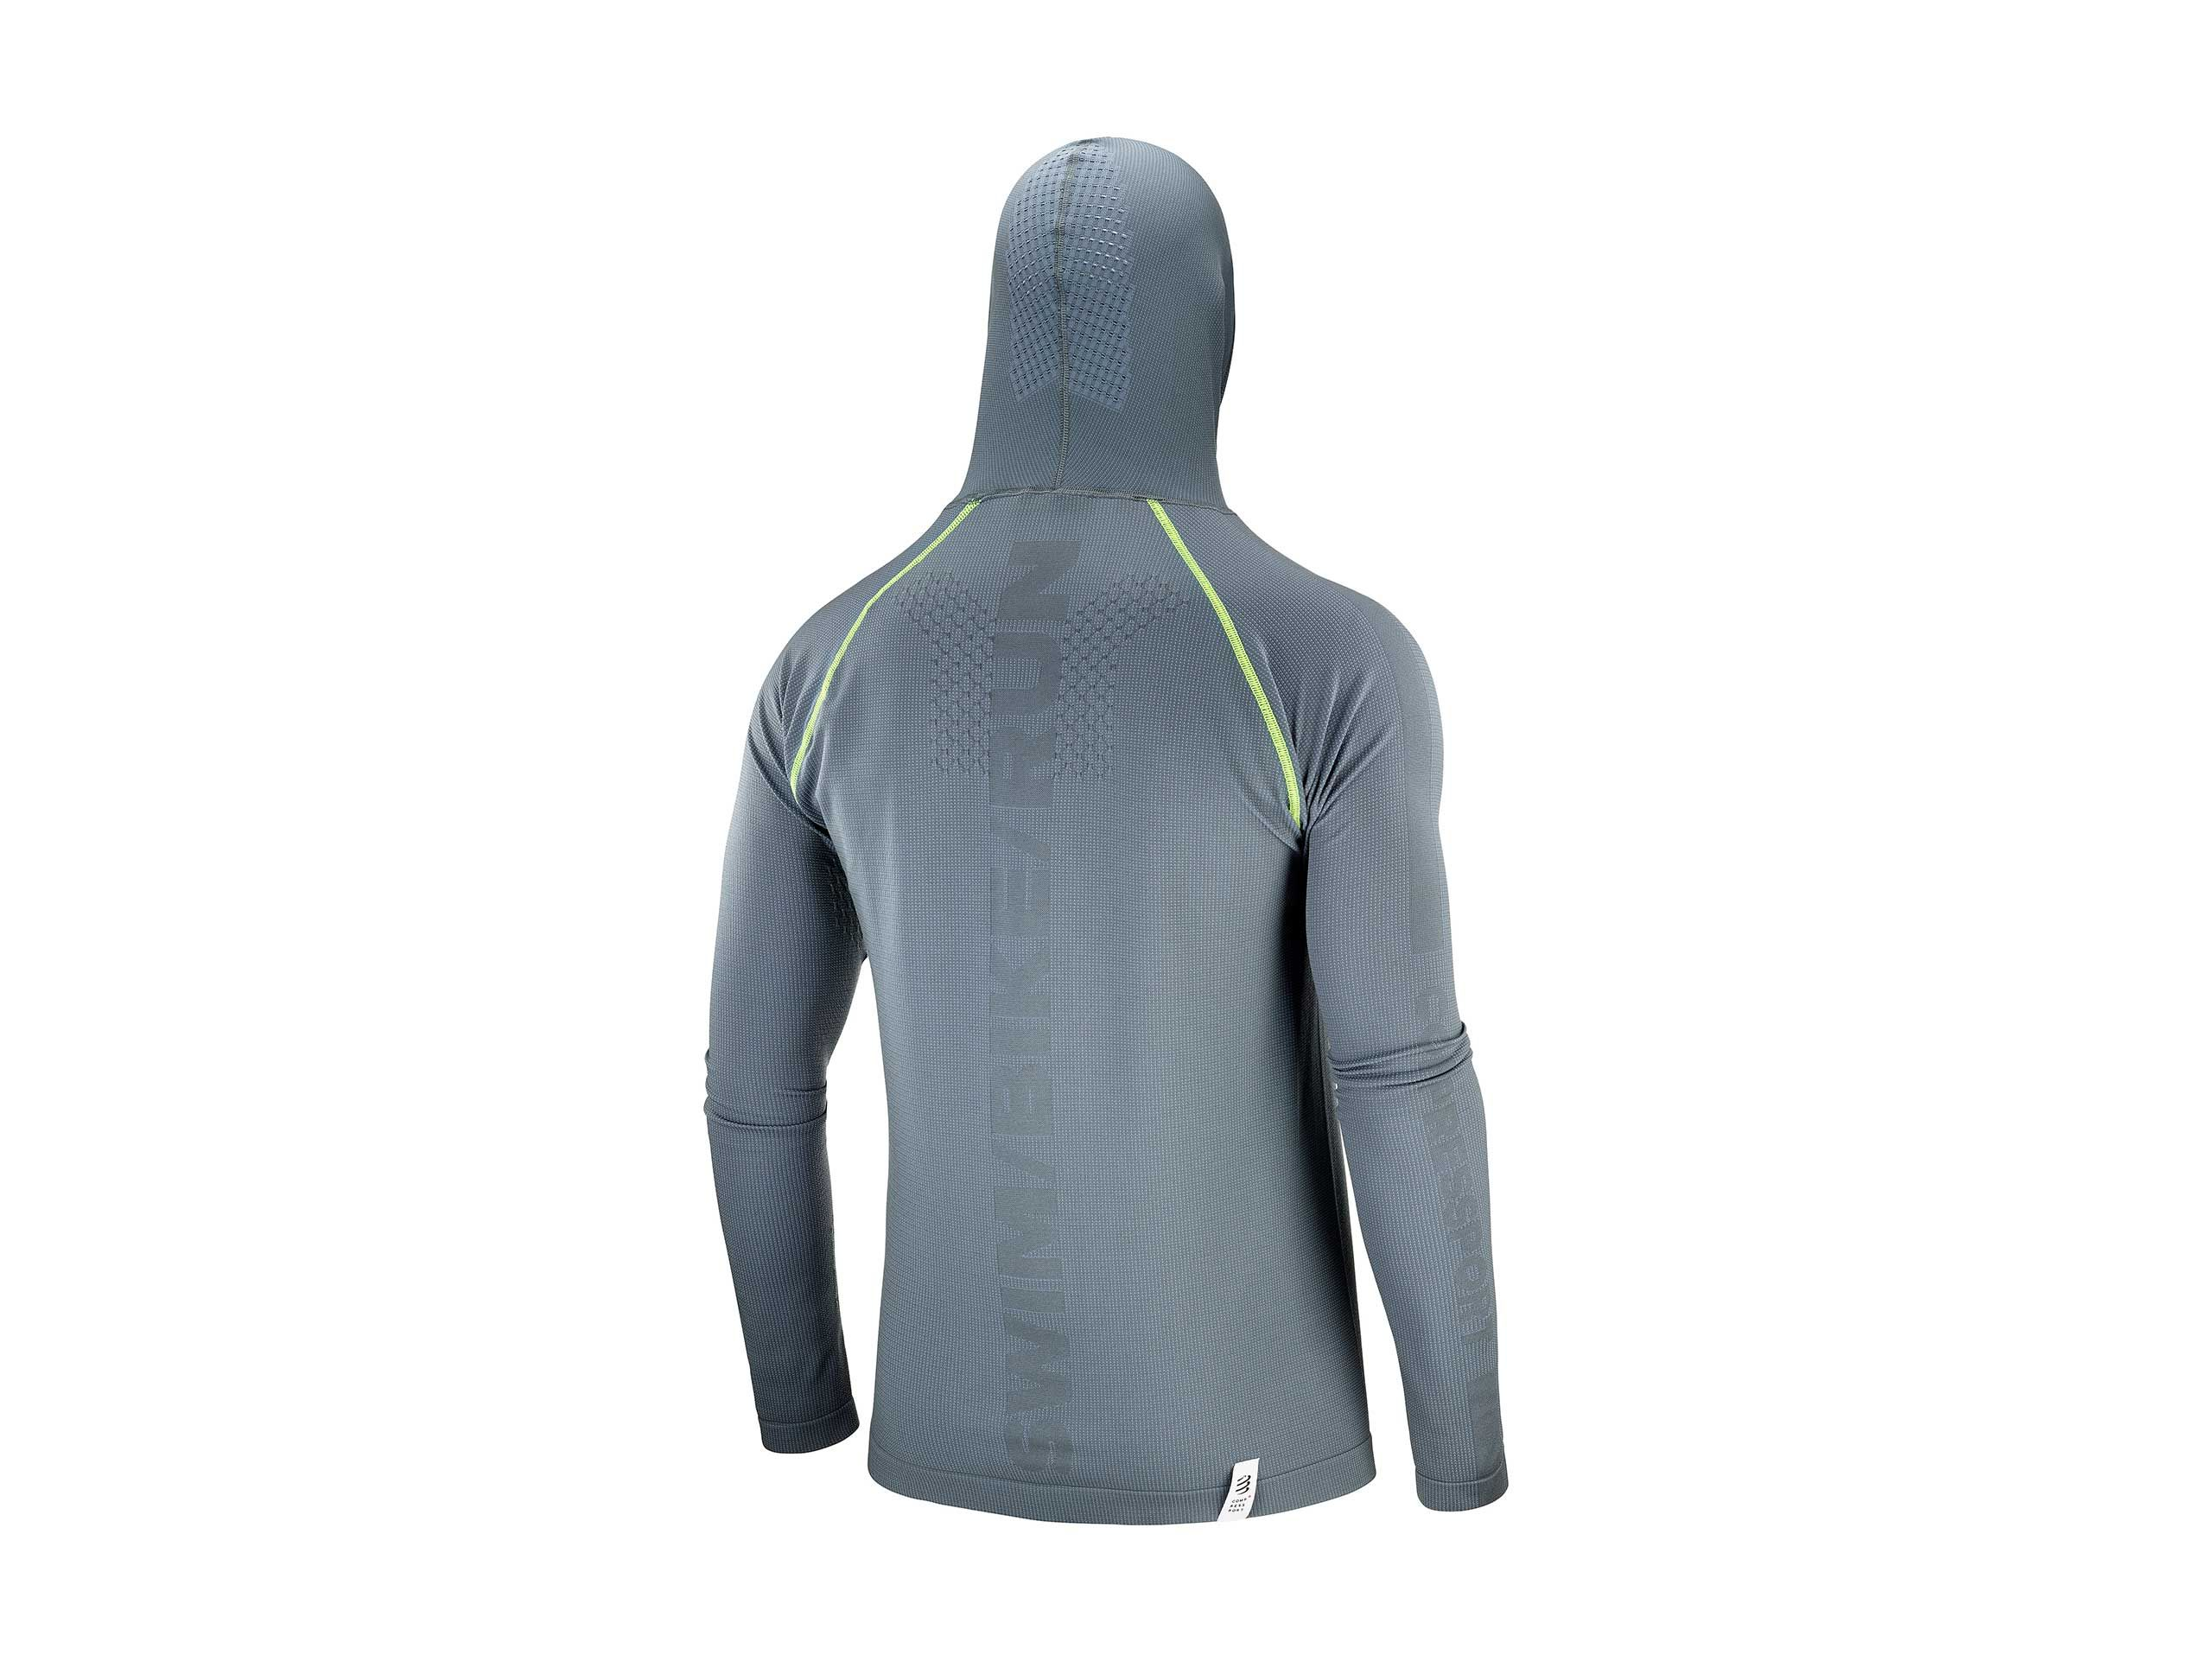 3D Thermo Seamless Hoodie - Born To SwimBikeRun 2020